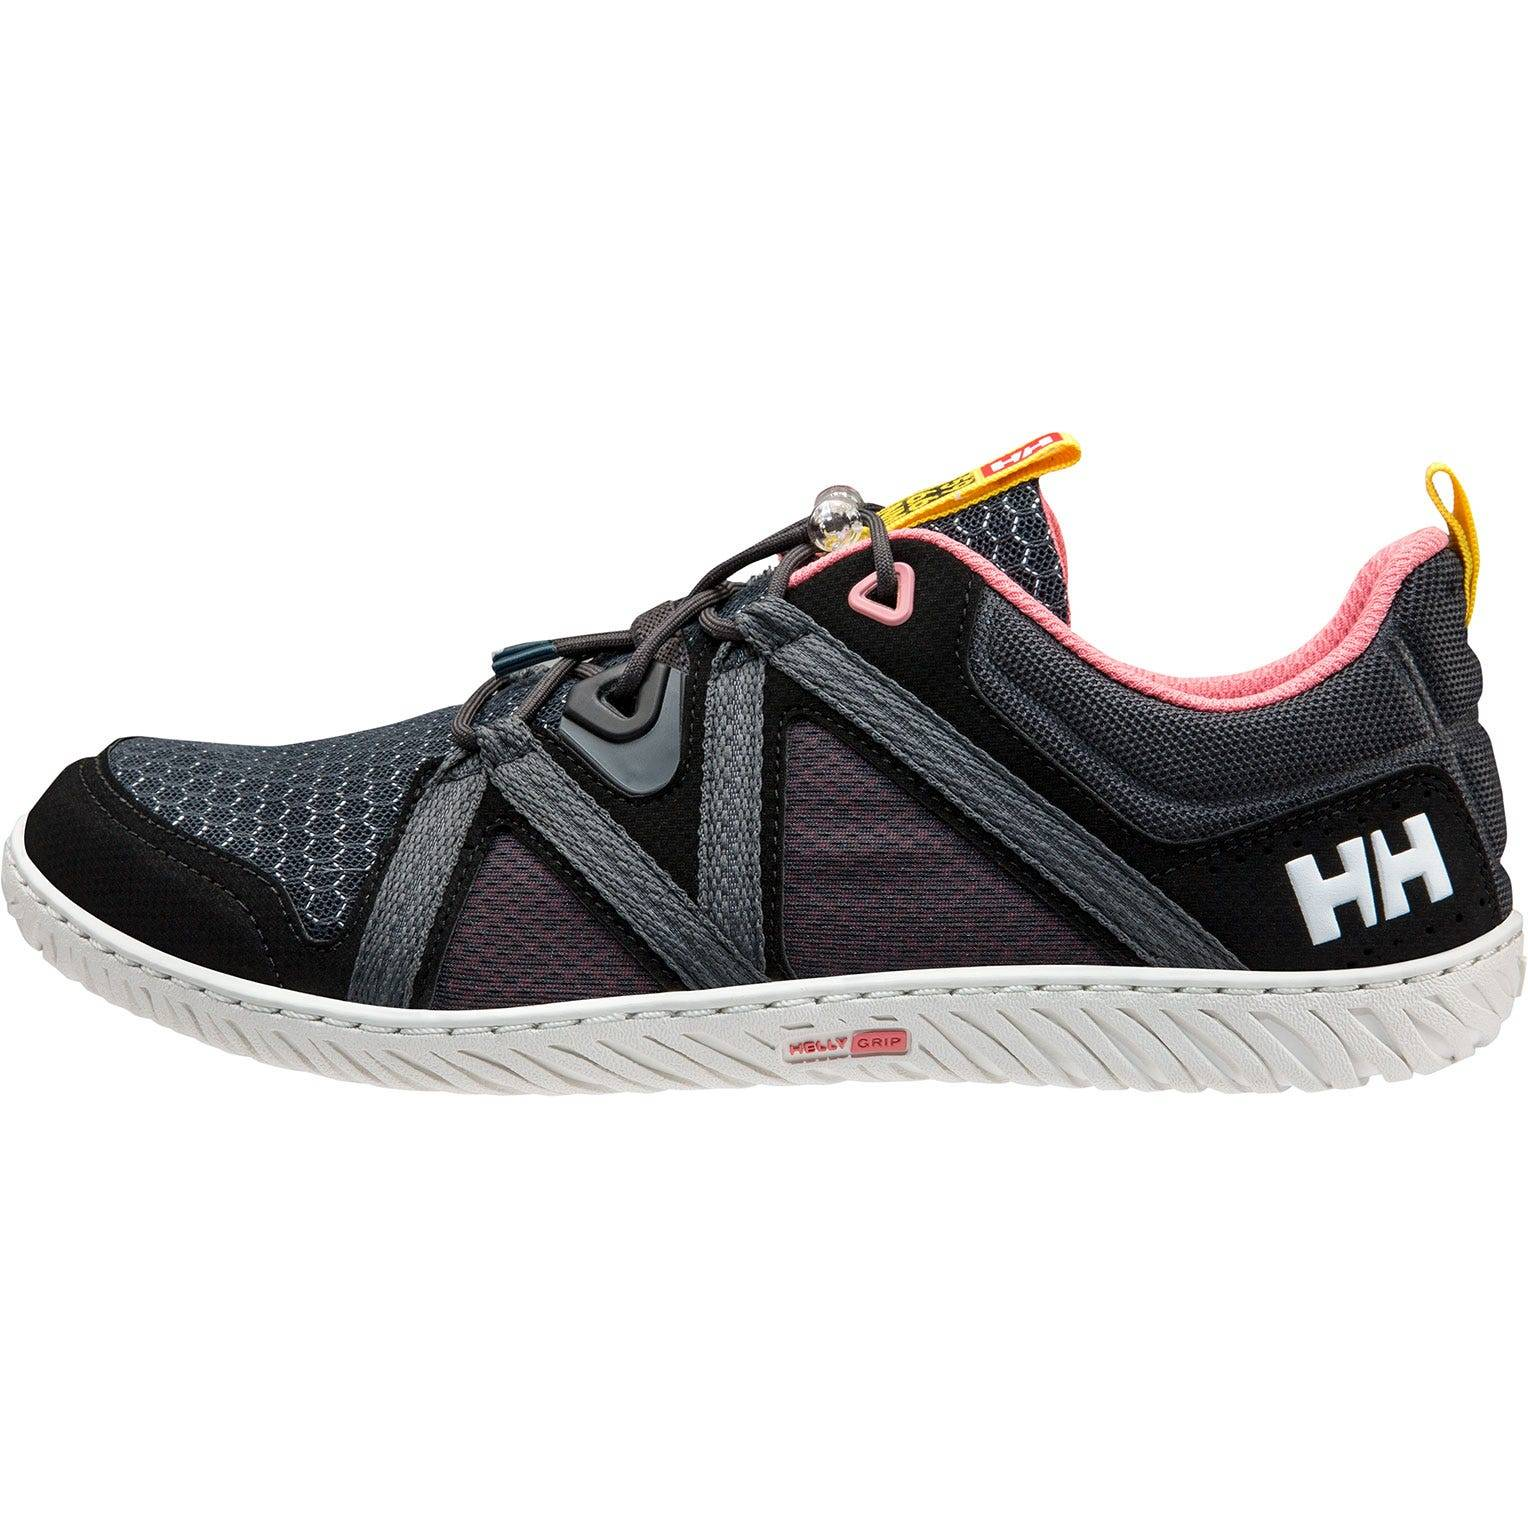 Helly Hansen W Hp Foil F1 Womens Sailing Shoe Black 37.5/6.5